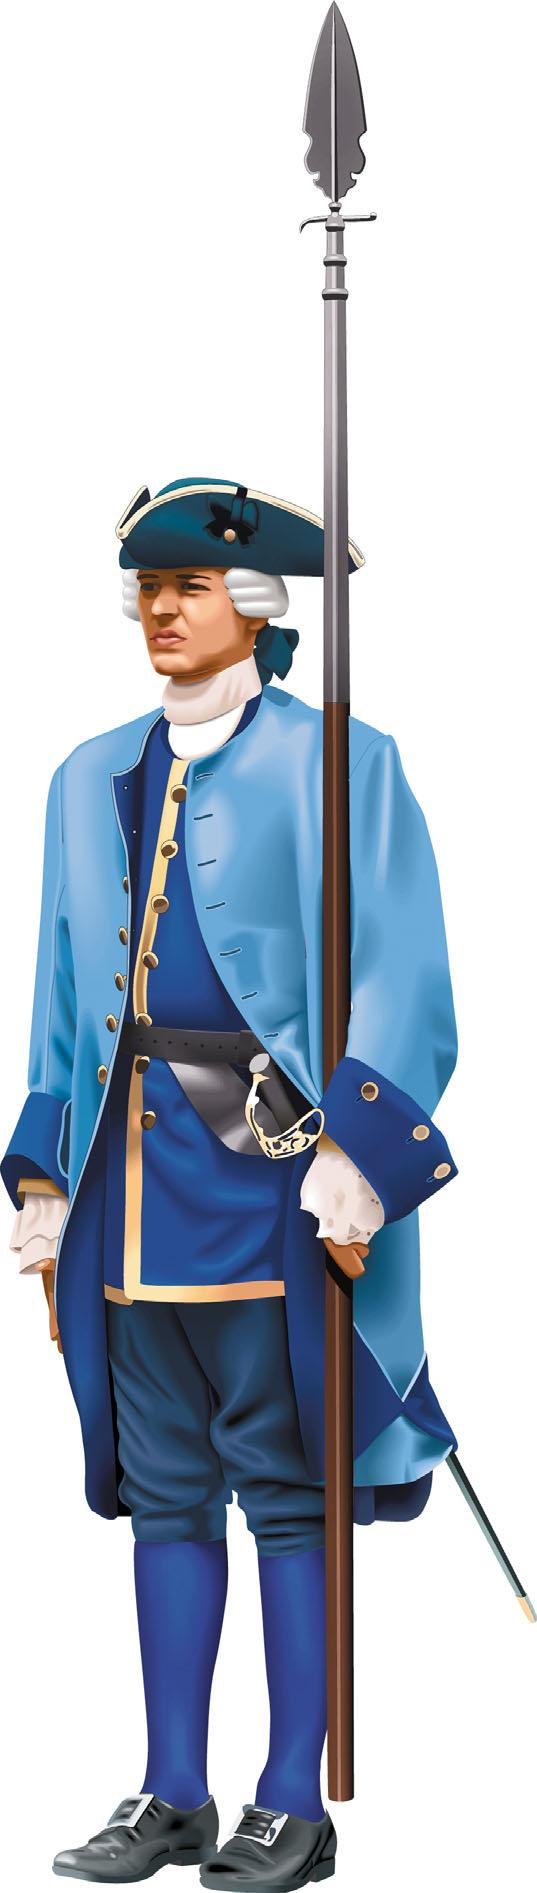 elements of ancient costume French soldier In the 18th century, French soldiers uniforms varied depending on their regiment and rank. spear A long wooden pole with a pointed steel head.